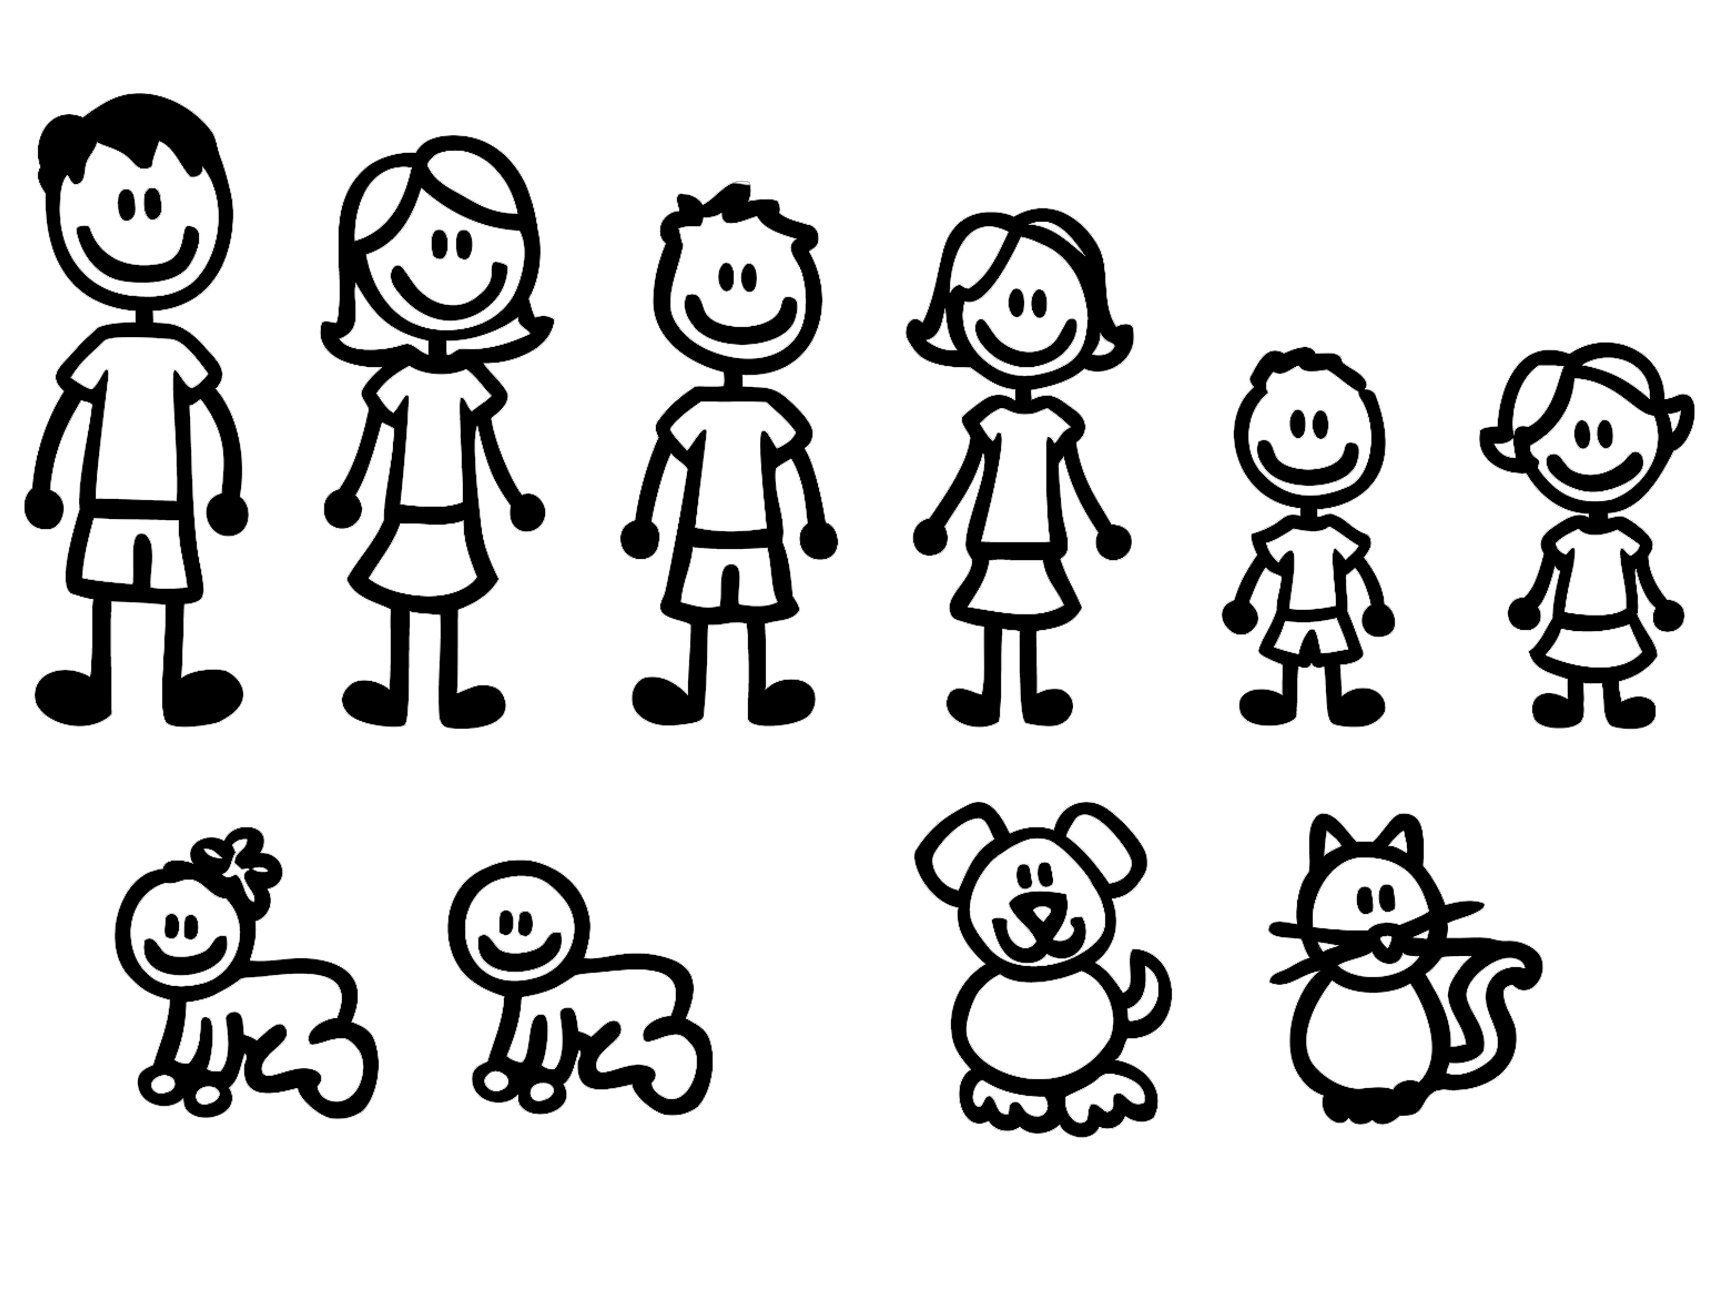 10 stick figure family your stick figure family can be applied to rh pinterest com stick family clipart Stick Figure Family of 5